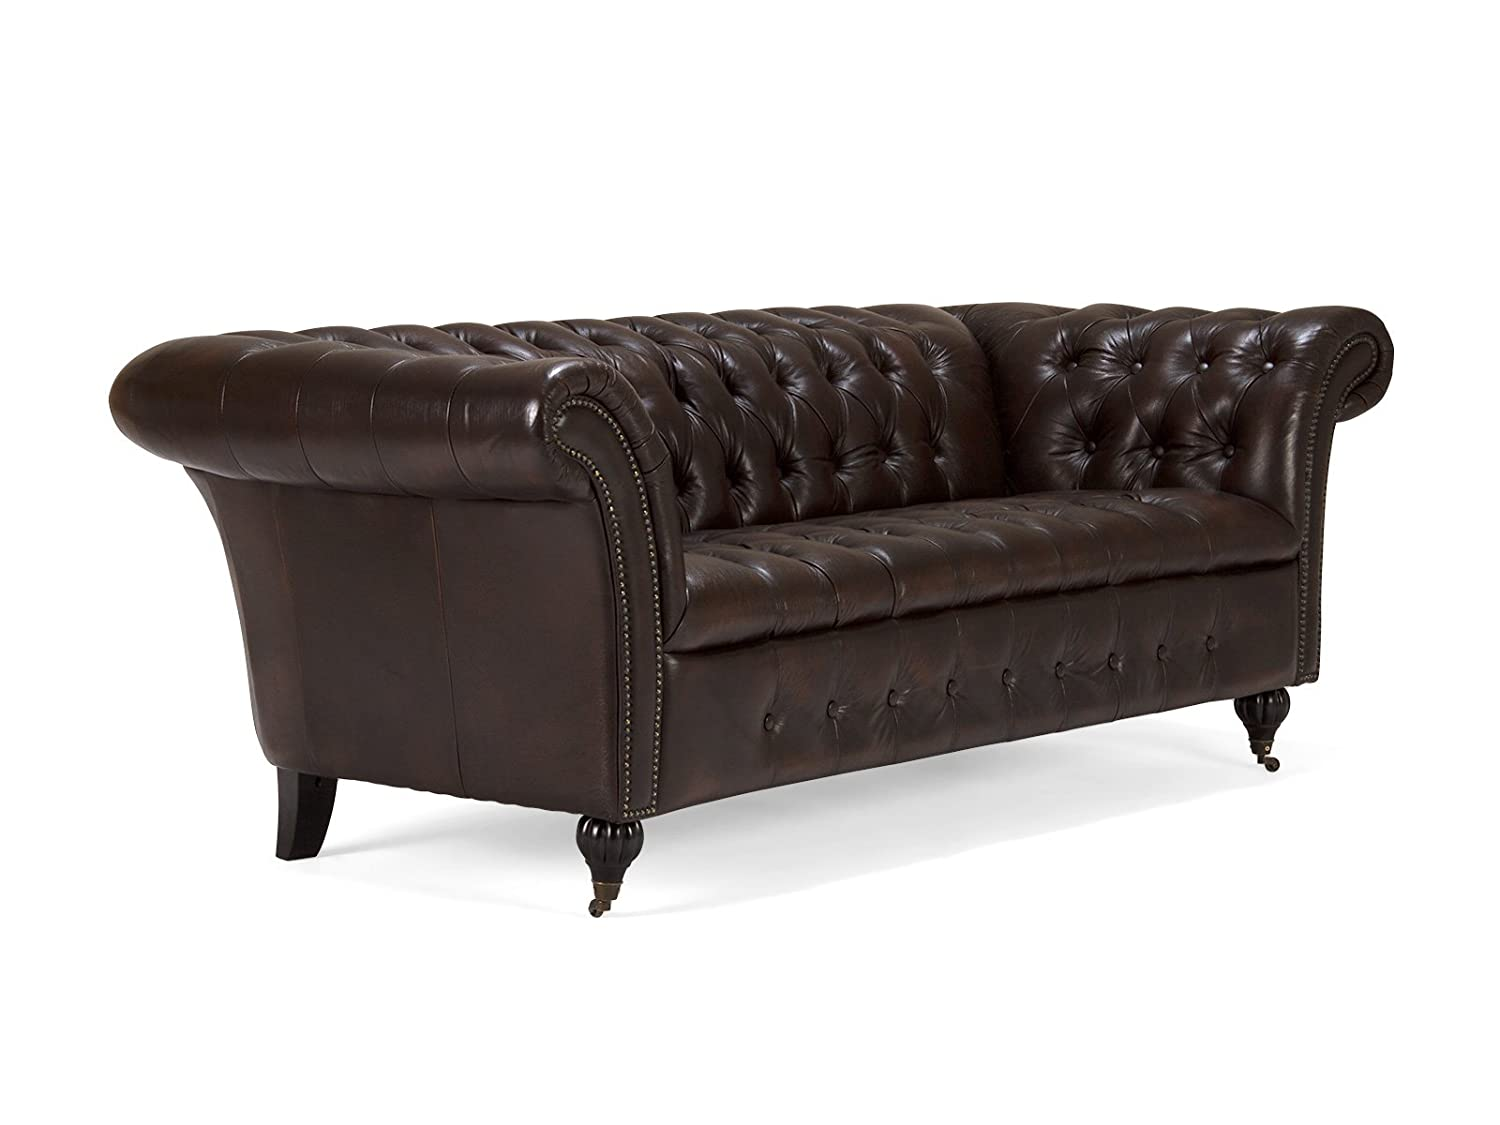 II Sofa 3-Sitzer Chesterfield